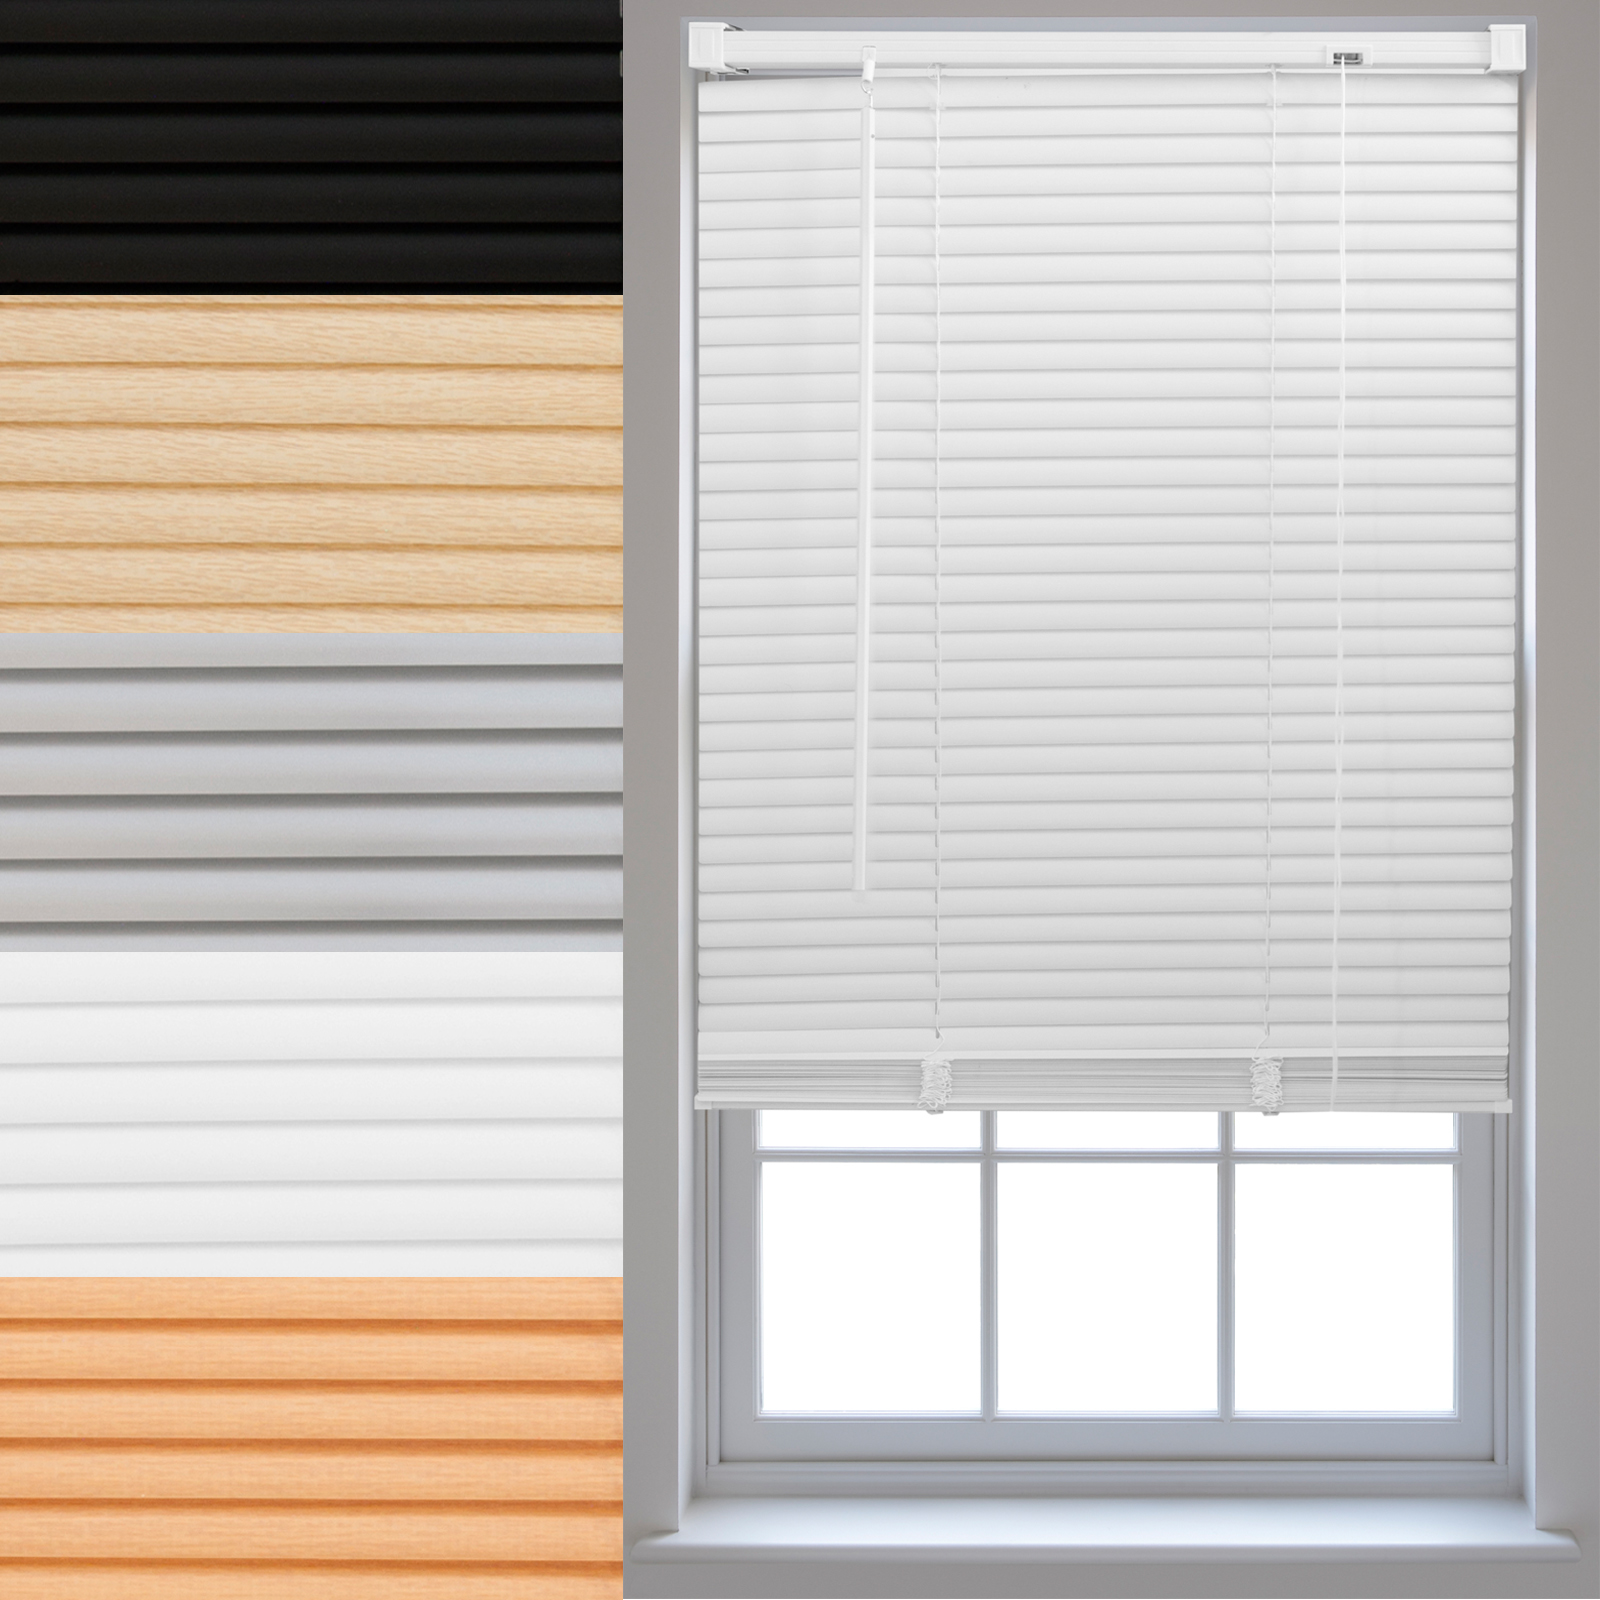 Pvc Venetian Blinds Made To Measure Window Home Office Blind New Ebay